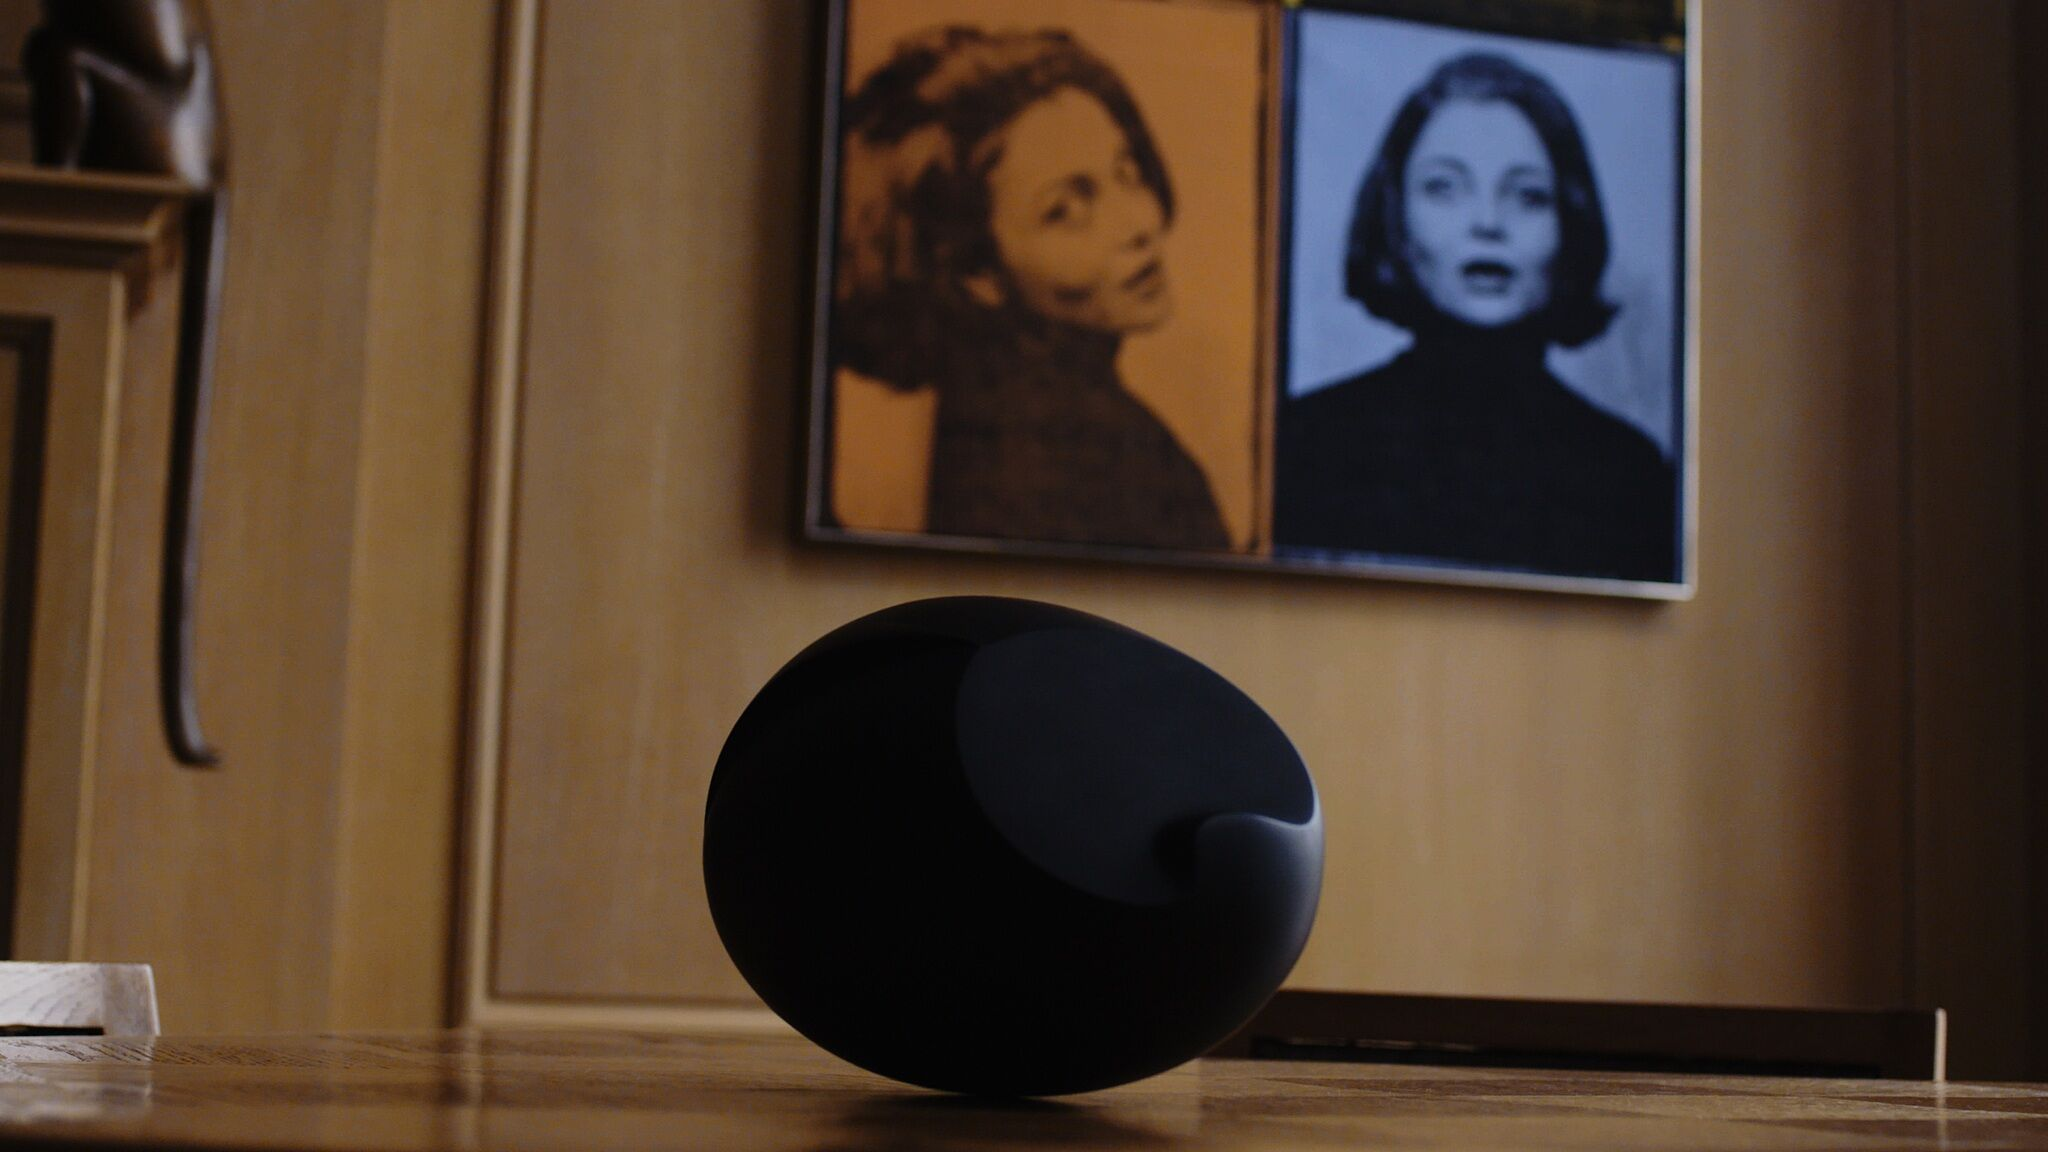 A video still of a round object on the floor in front of a wall with portraits hanging on it.